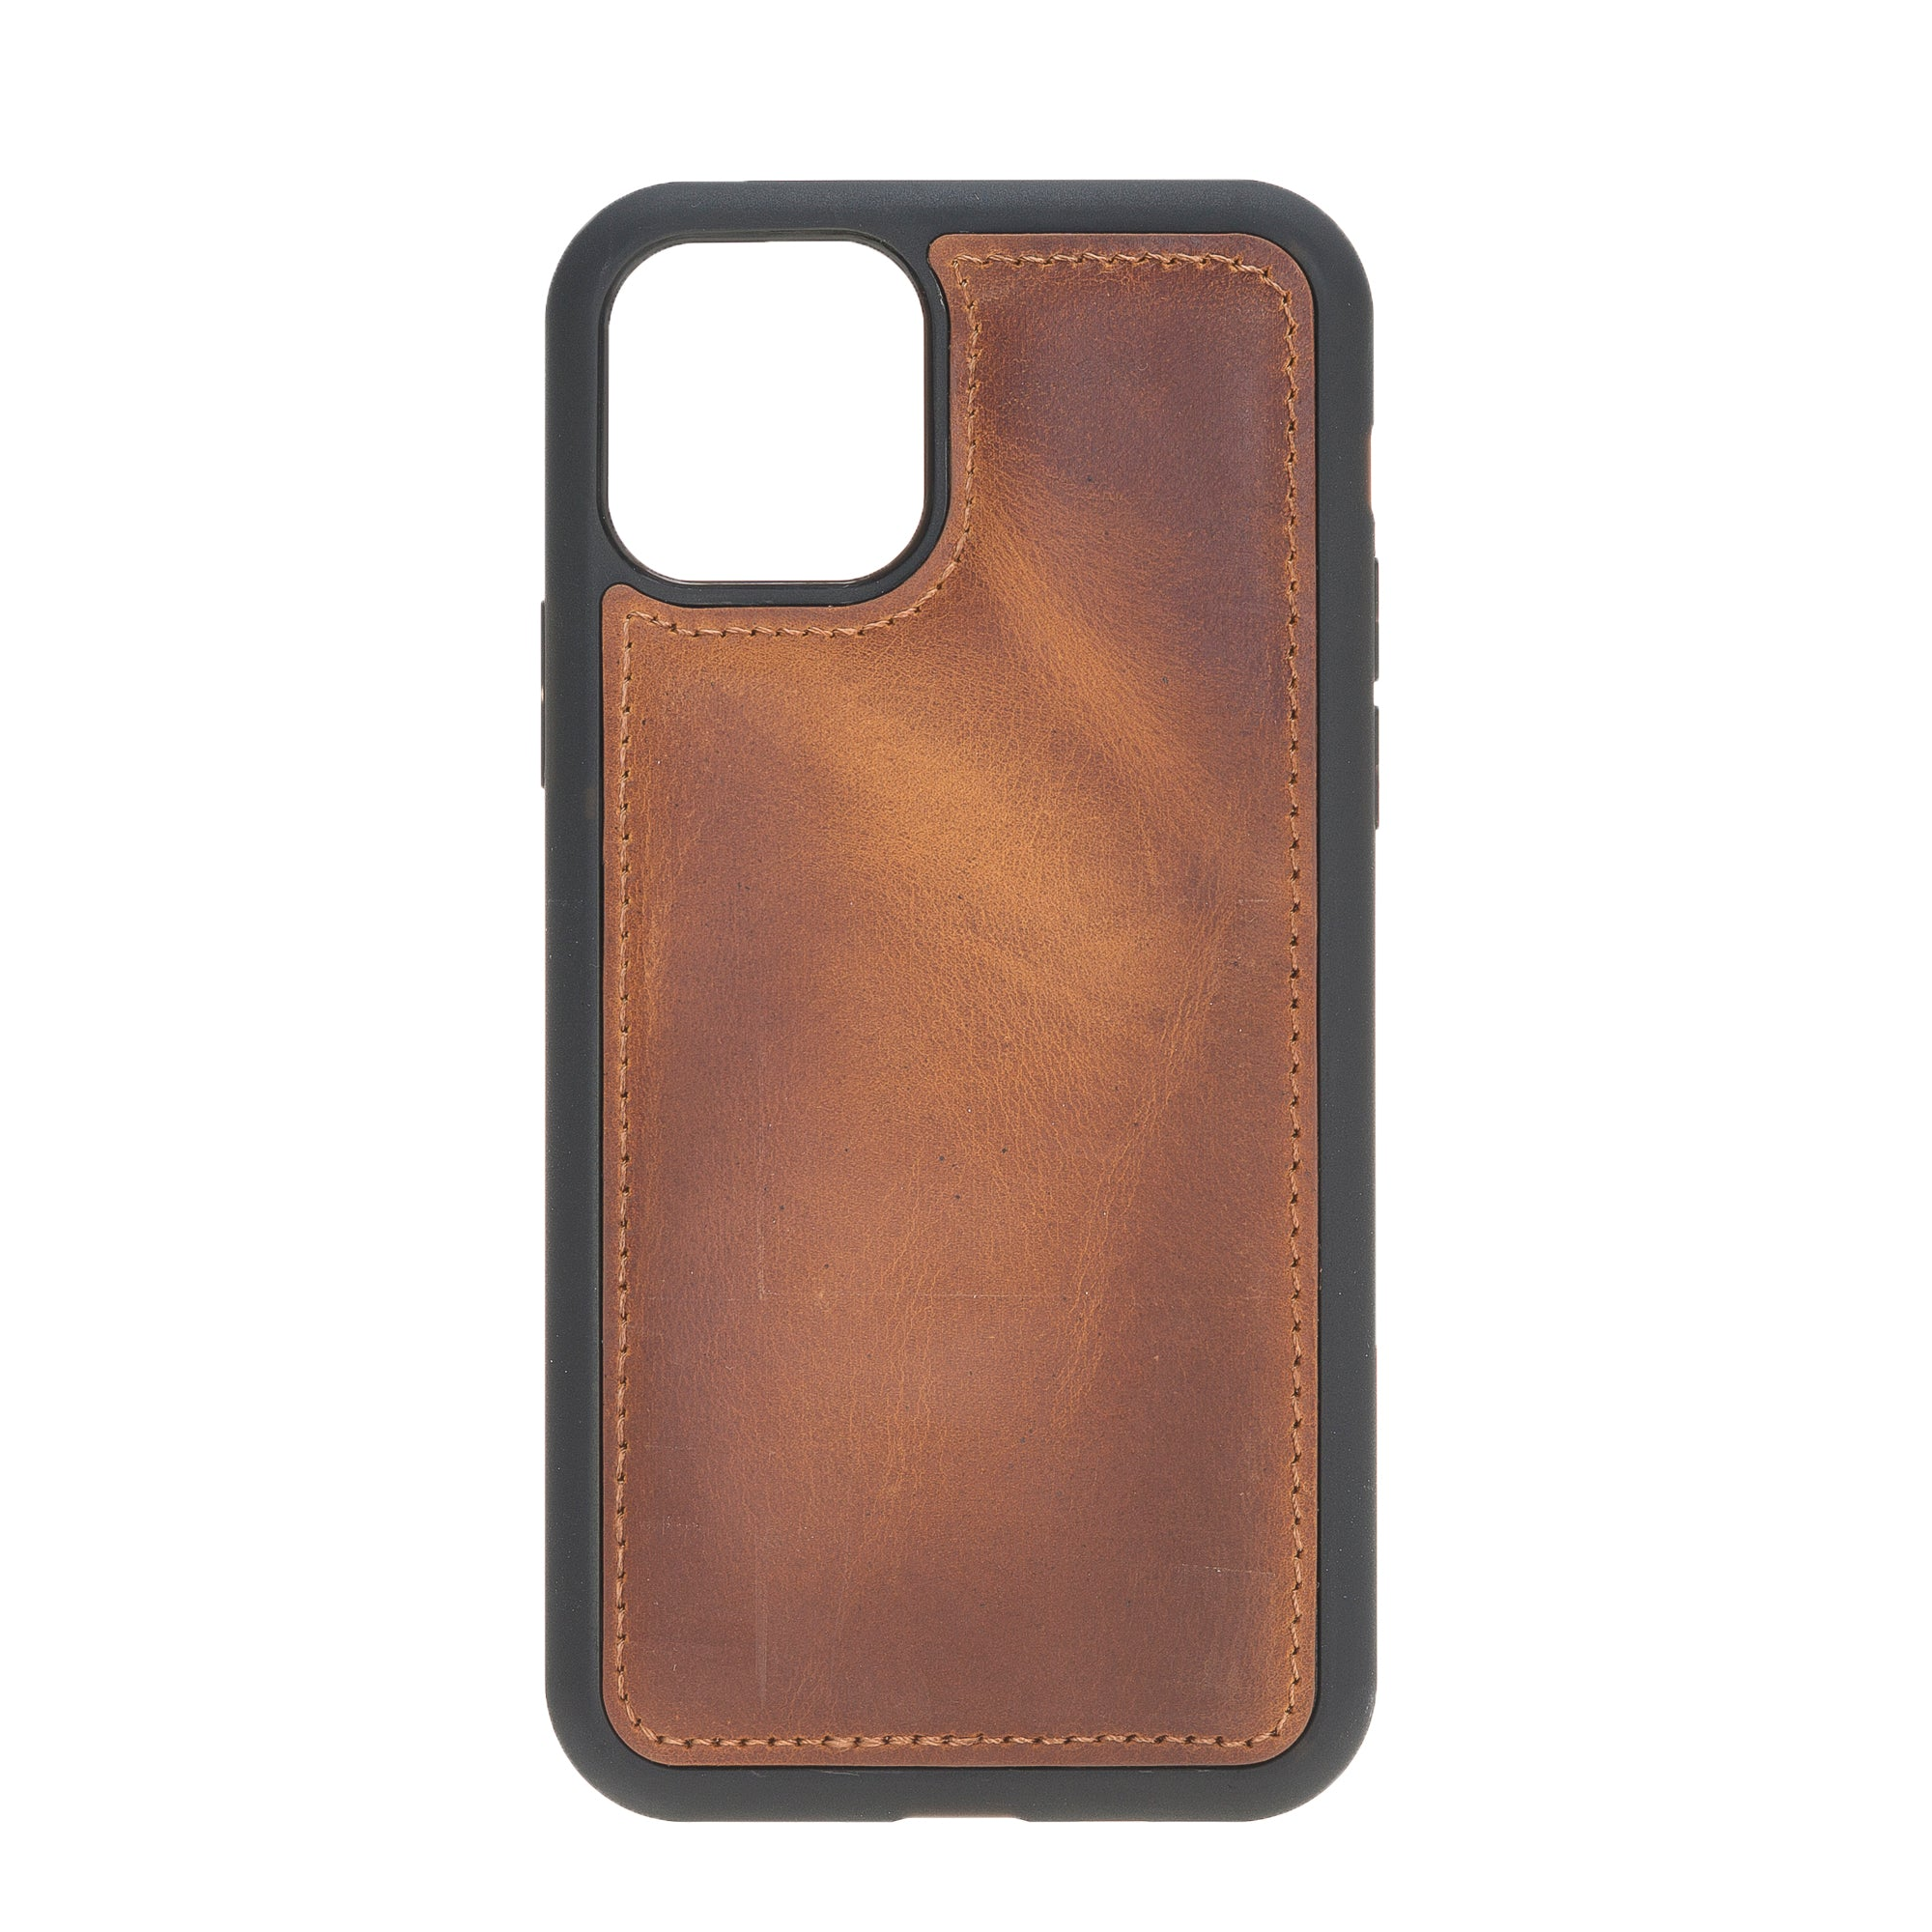 "Vintage Brown Apple iPhone 11 PRO (5.8"") Leather Case"